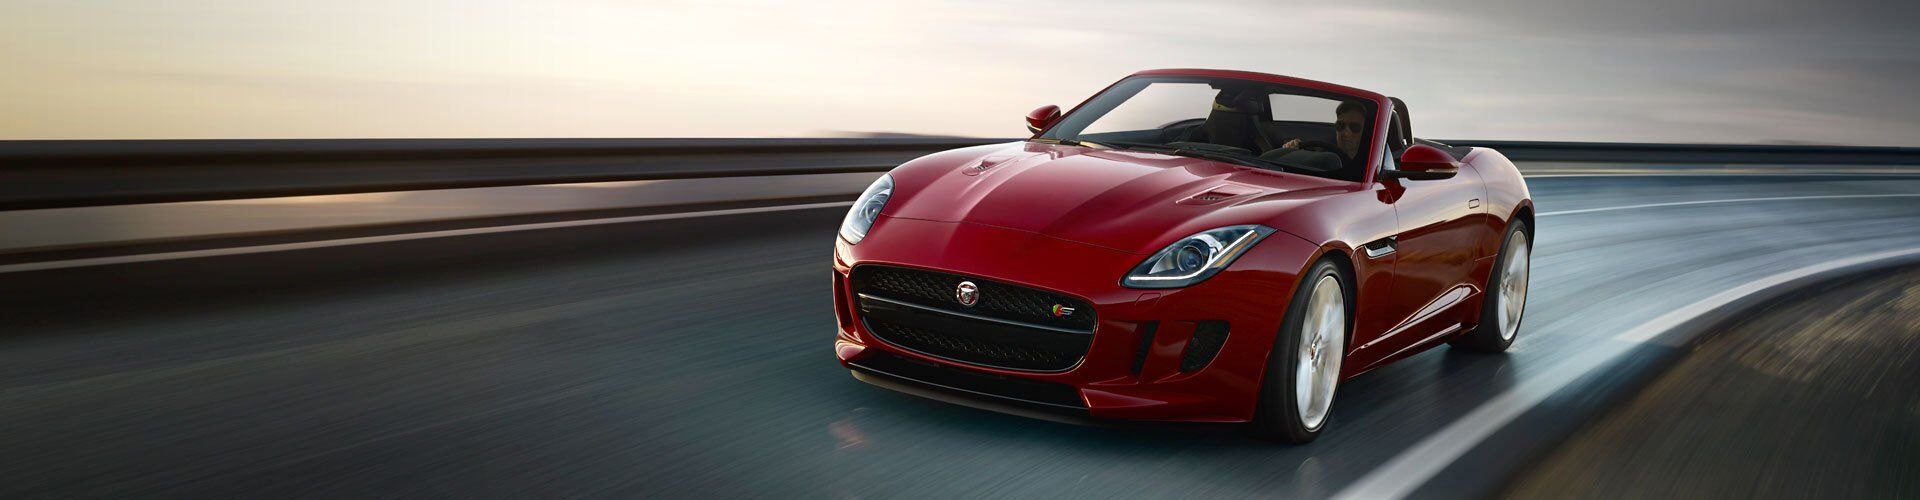 New Jaguar F-TYPE at Jaguar of Tacoma